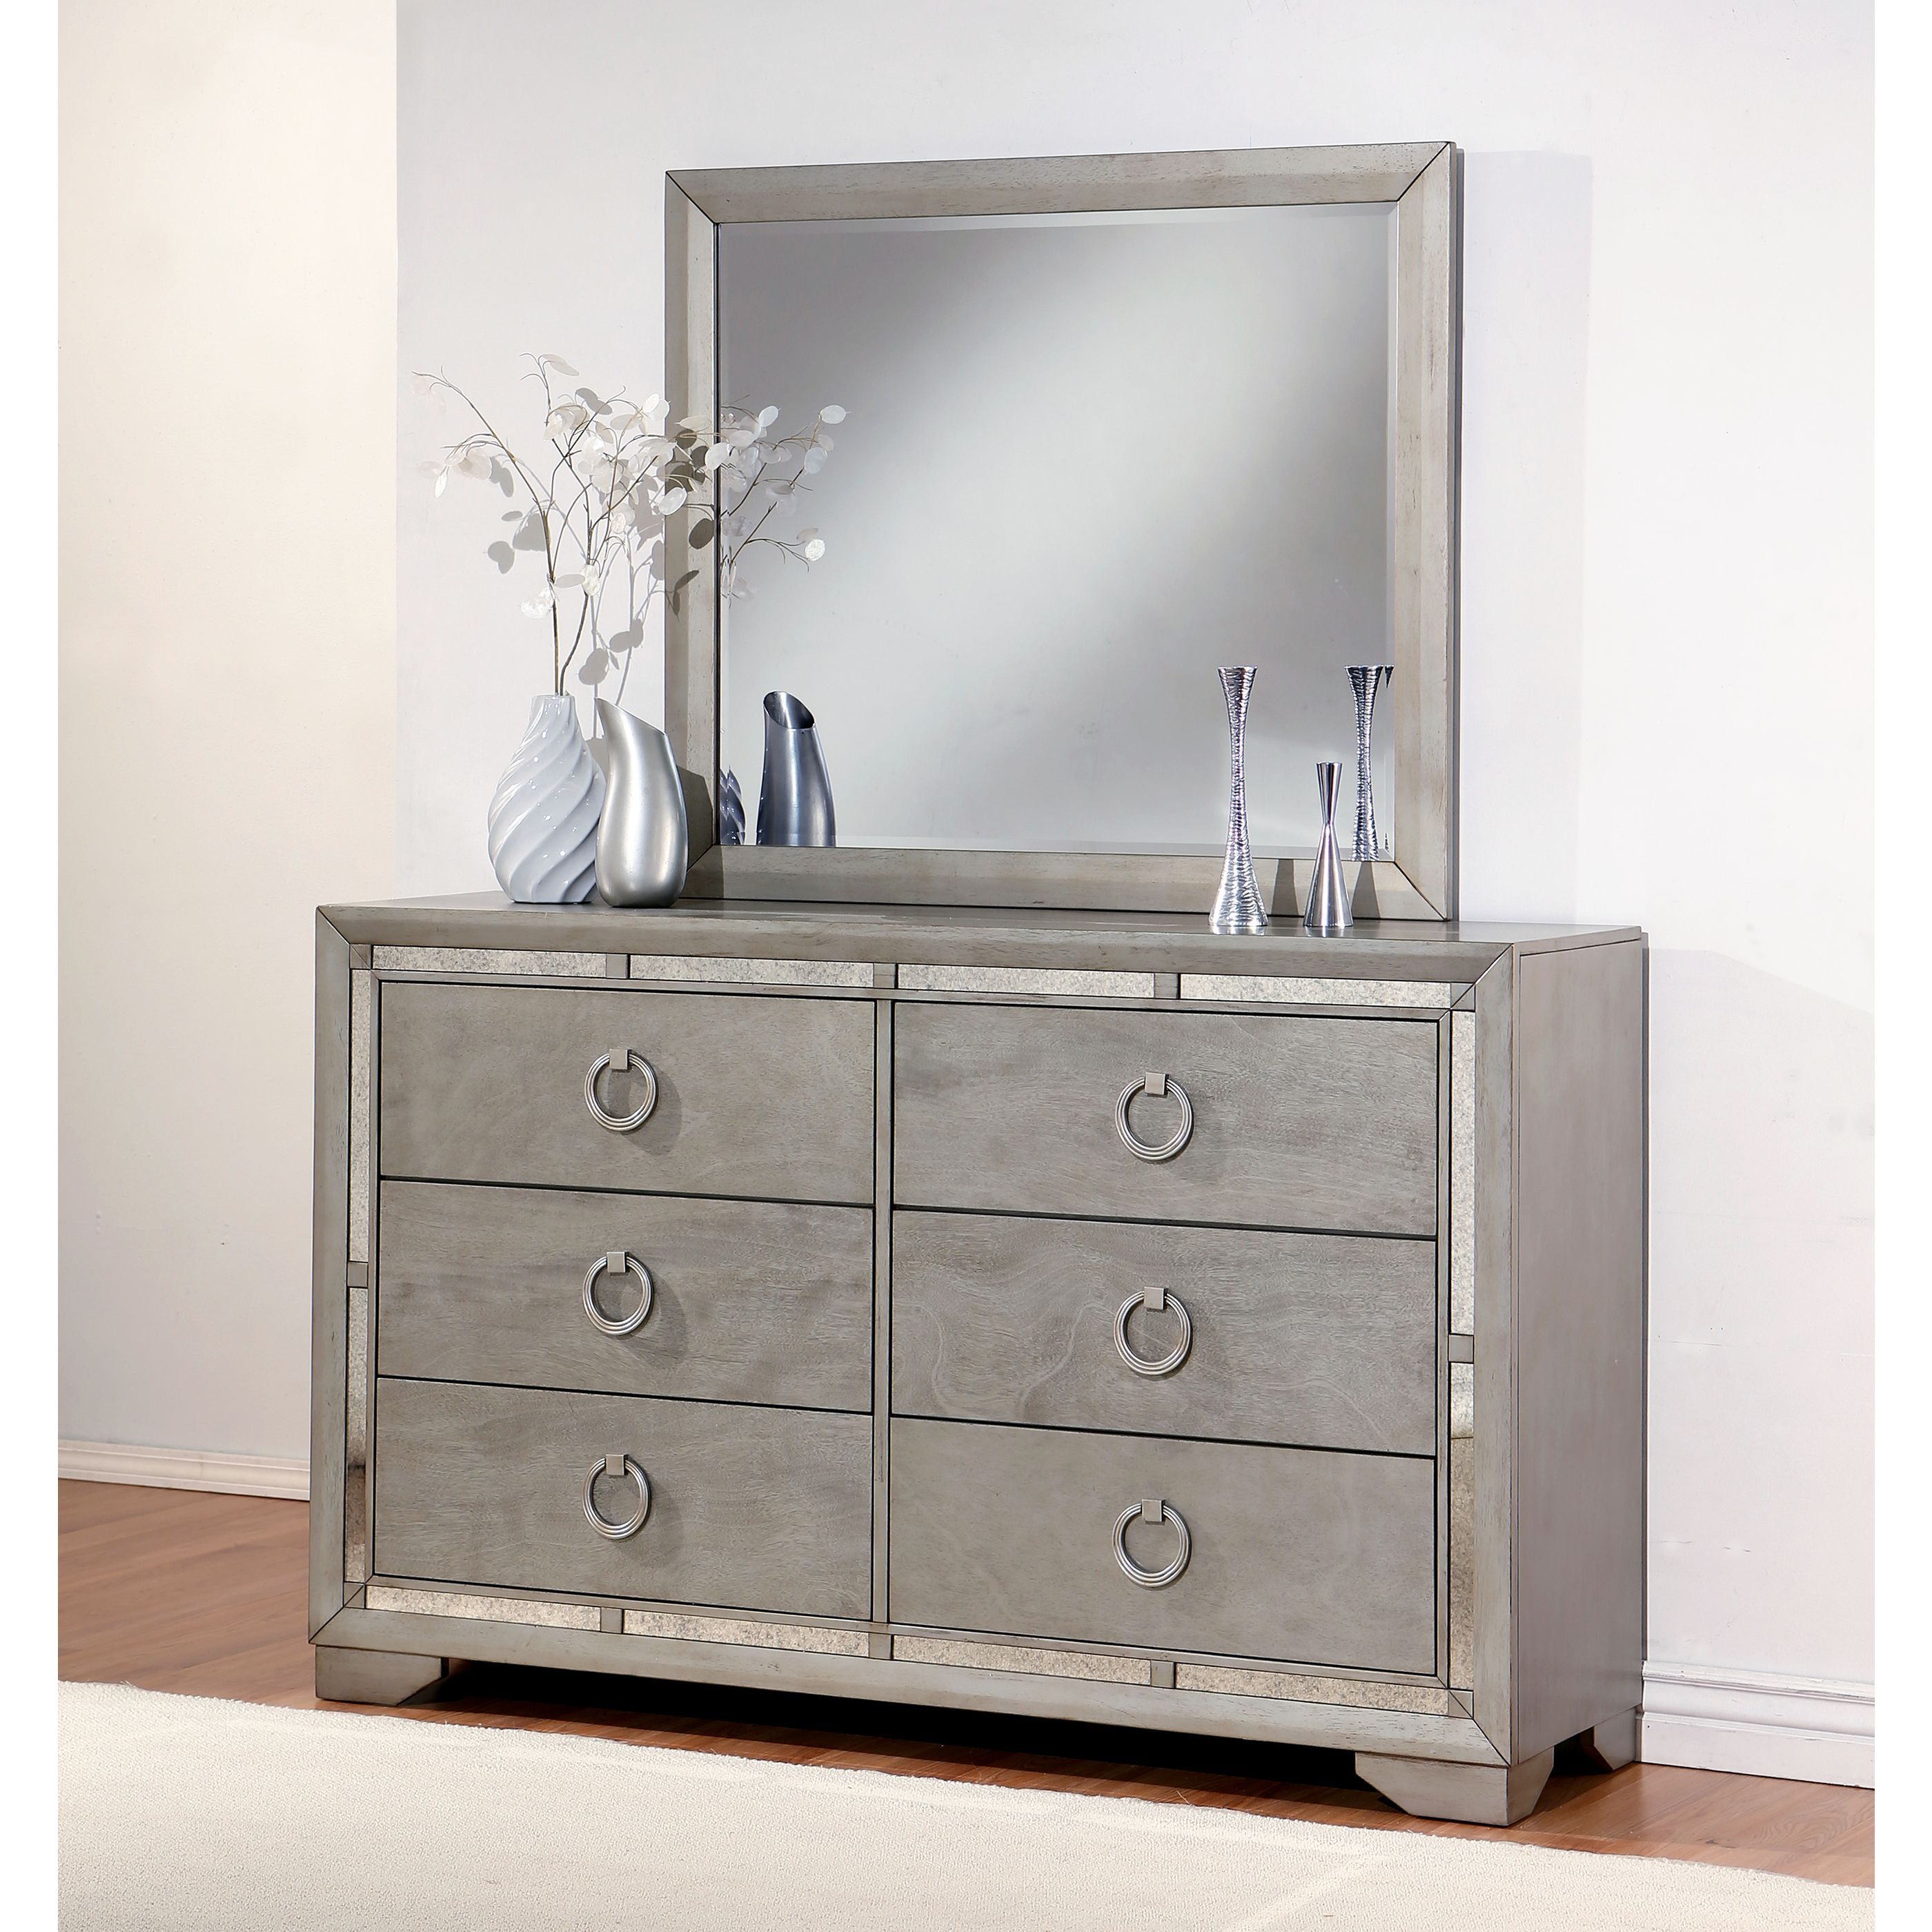 Williams sonoma home five panel beveled mirror - Channel Vintage Elegance At Home With This Dresser And Mirror